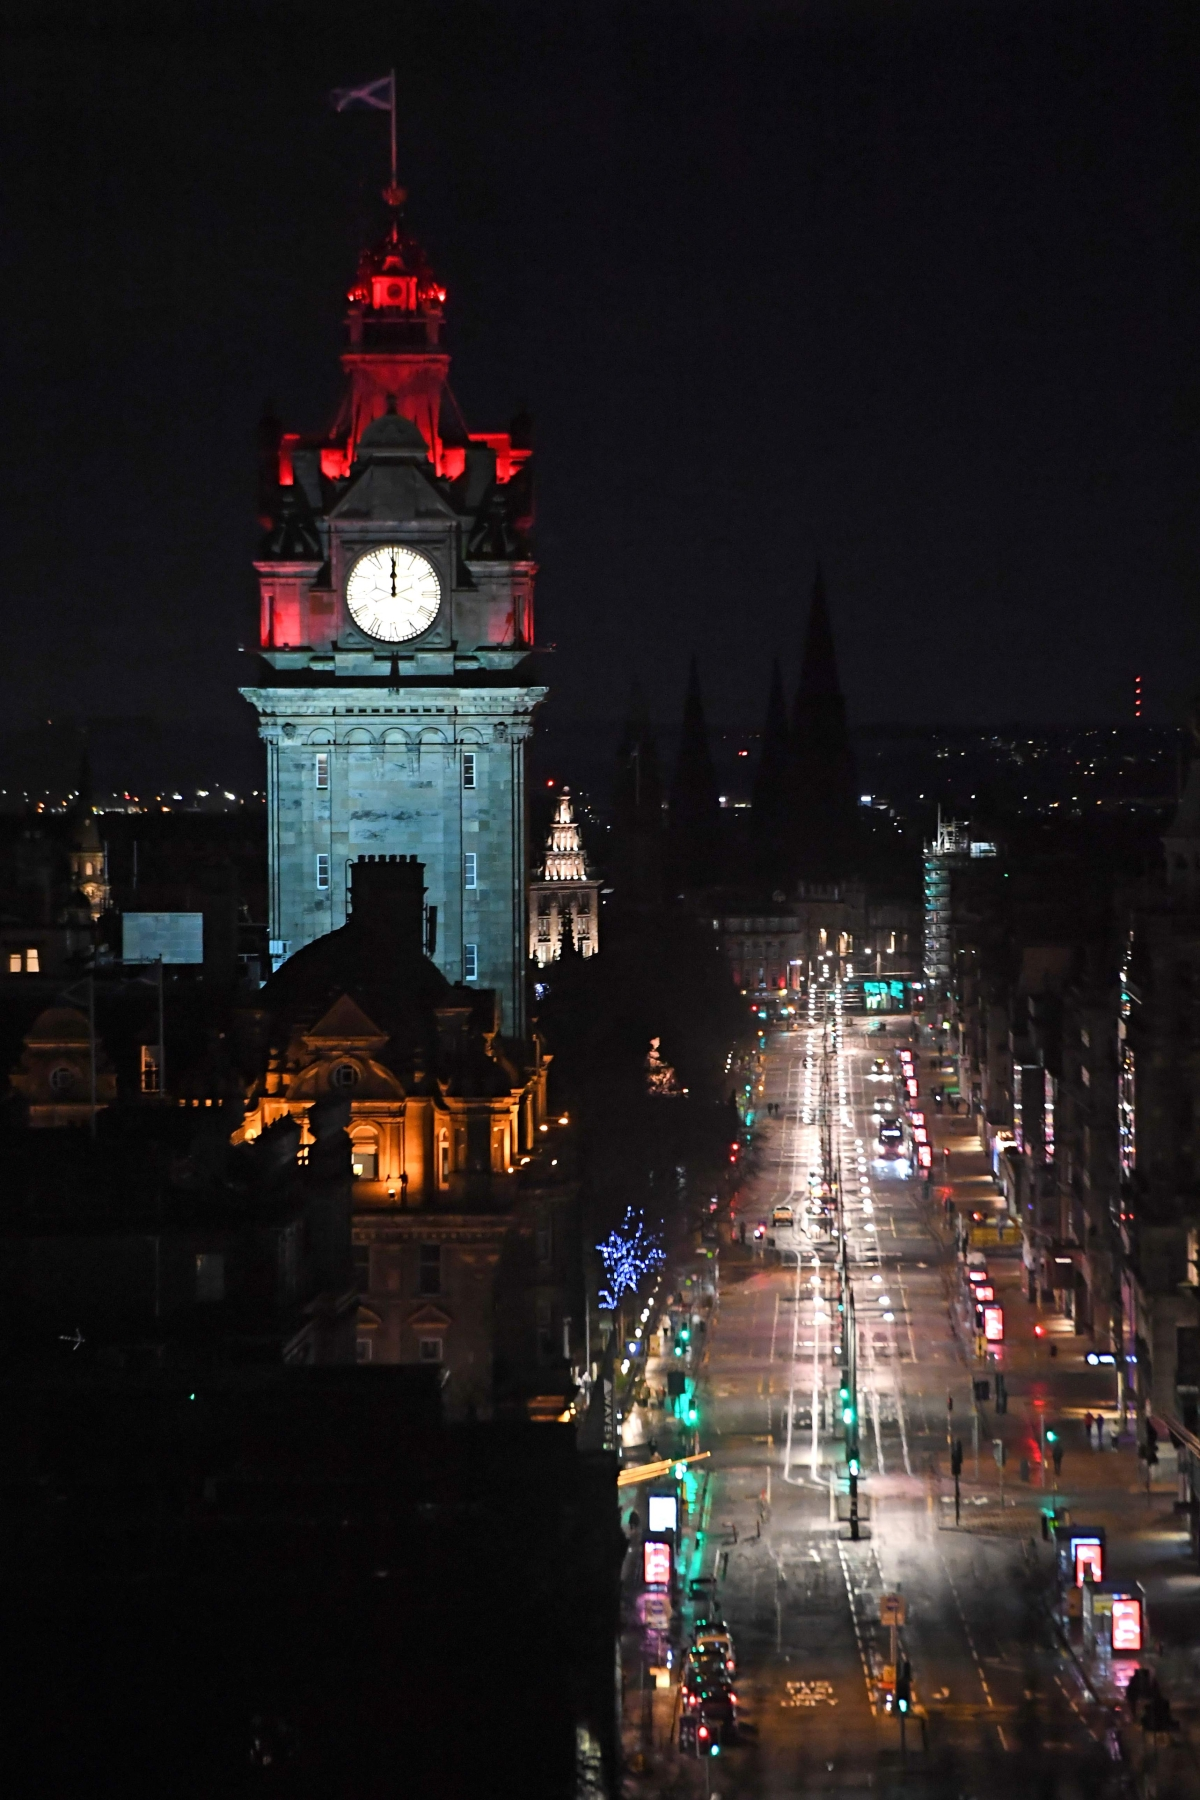 A near-deserted Princes Street in Edinburgh is pictured as the time passes midnight early on January 1, 2021 in Edinburgh, as the message to stay at home rather than going out to celebrate Hogmanay in the city is generally obeyed. - The streets of Scotlands capital are normally packed at Hogmanay, as people from around the world flock to see in the New Year in raucous style. As with so much else, the coronavirus outbreak has put paid the celebrations, putting Scots in a gloomy mood made worse by Britains parting of the ways with Europe.